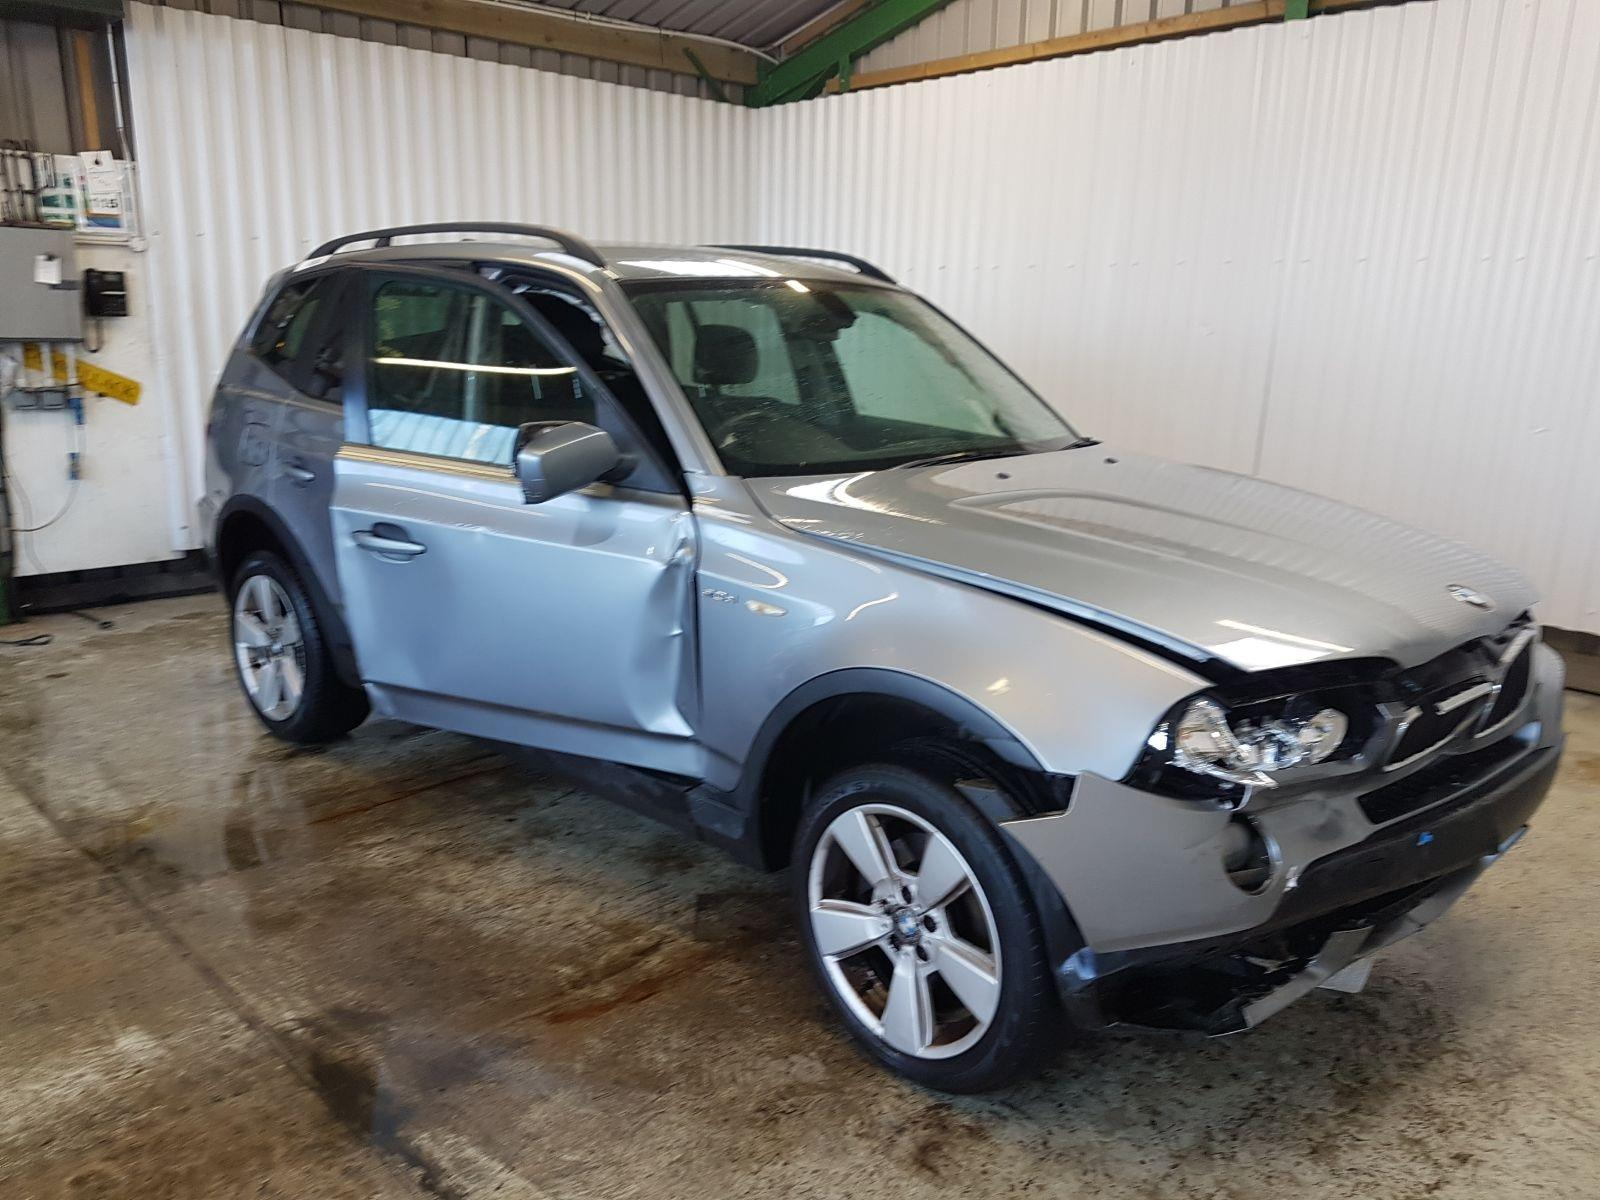 BMW X3 2007 To 2010 d SE 5 Door Estate